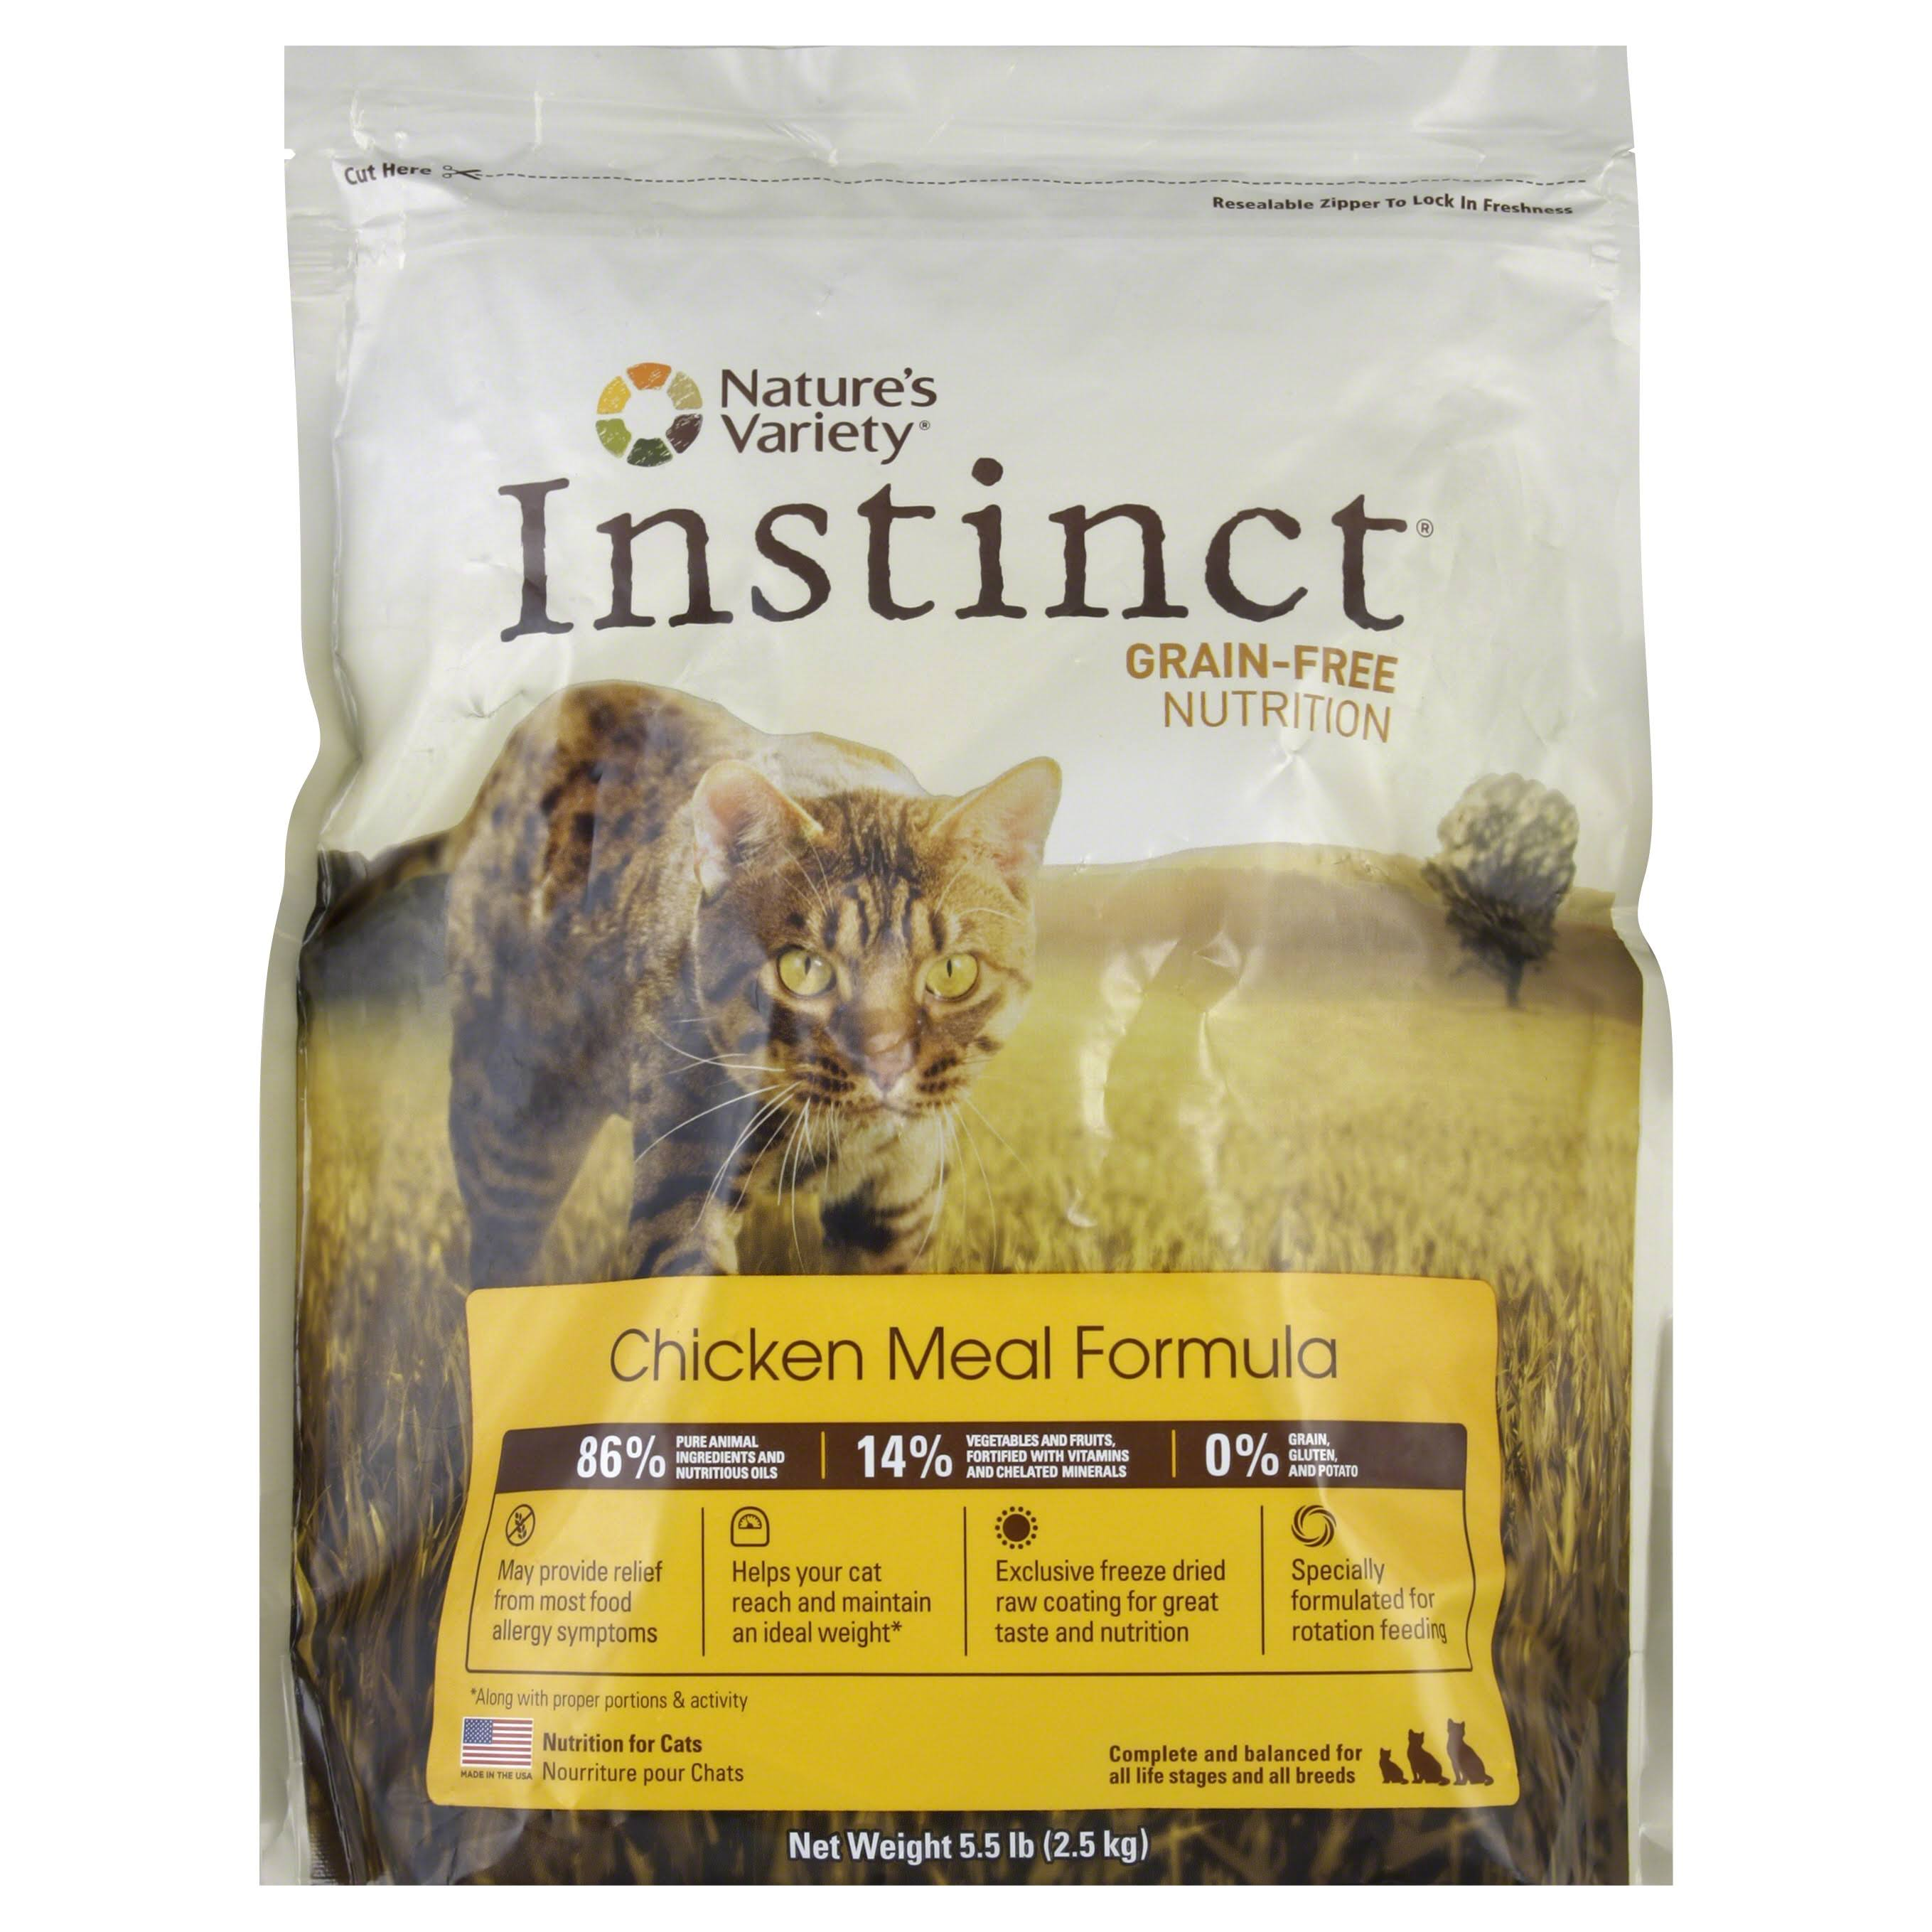 Nature's Variety Instinct Grain-Free Chicken Meal Formula Dry Cat Food - 5.5lb